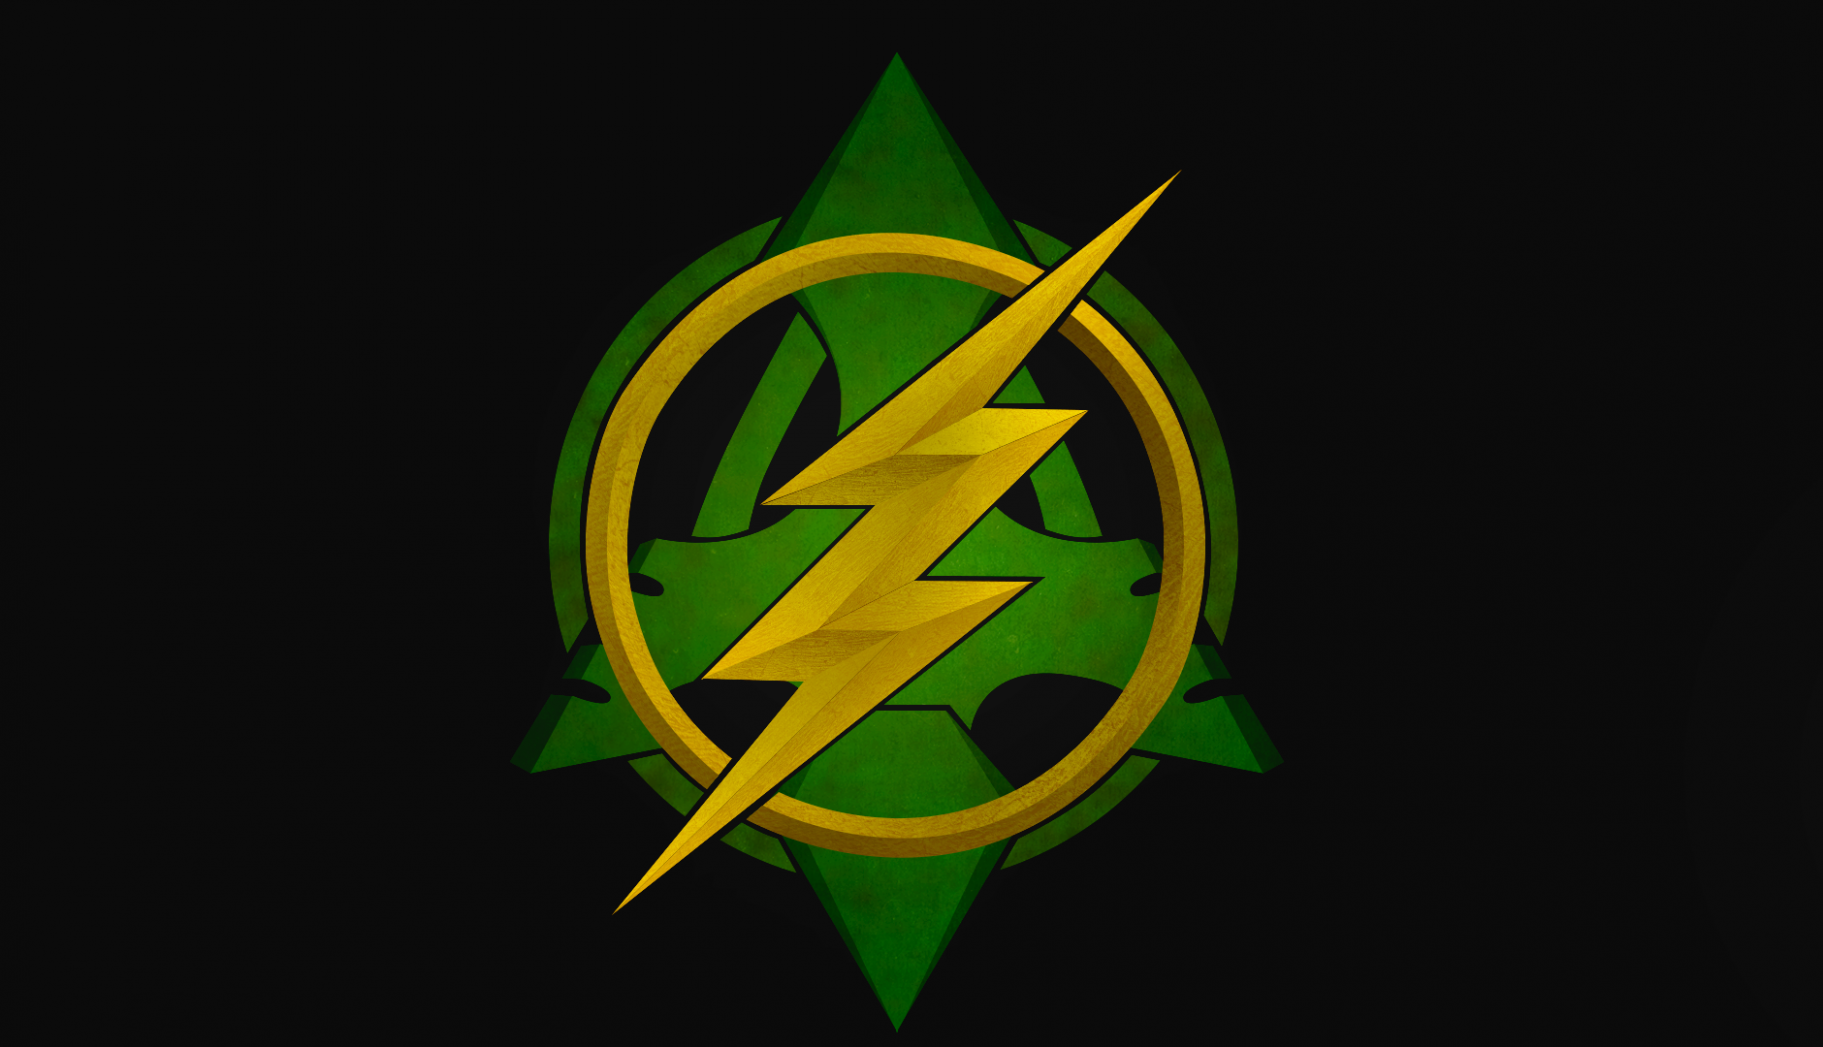 Check Out This Awesome Green Arrow Symbol Design On Teepublic Http Bit Ly 1vmq7x4 Arrow Symbol Green Arrow Logo Green Arrow